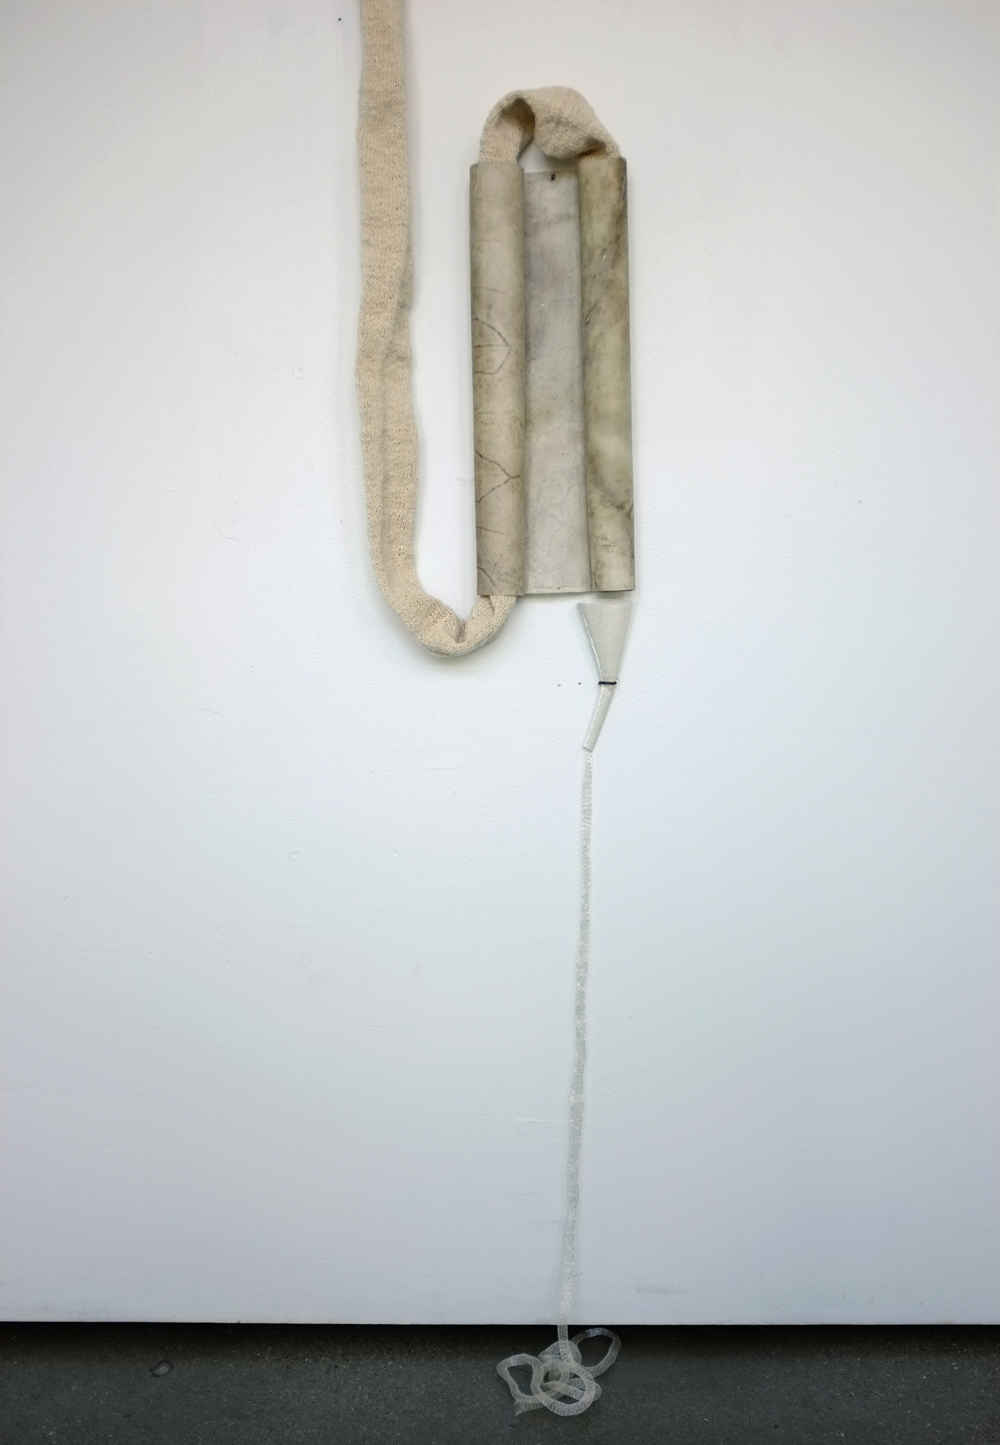 Helen_Hawley_Discarnation_Detail_1_2015.jpg